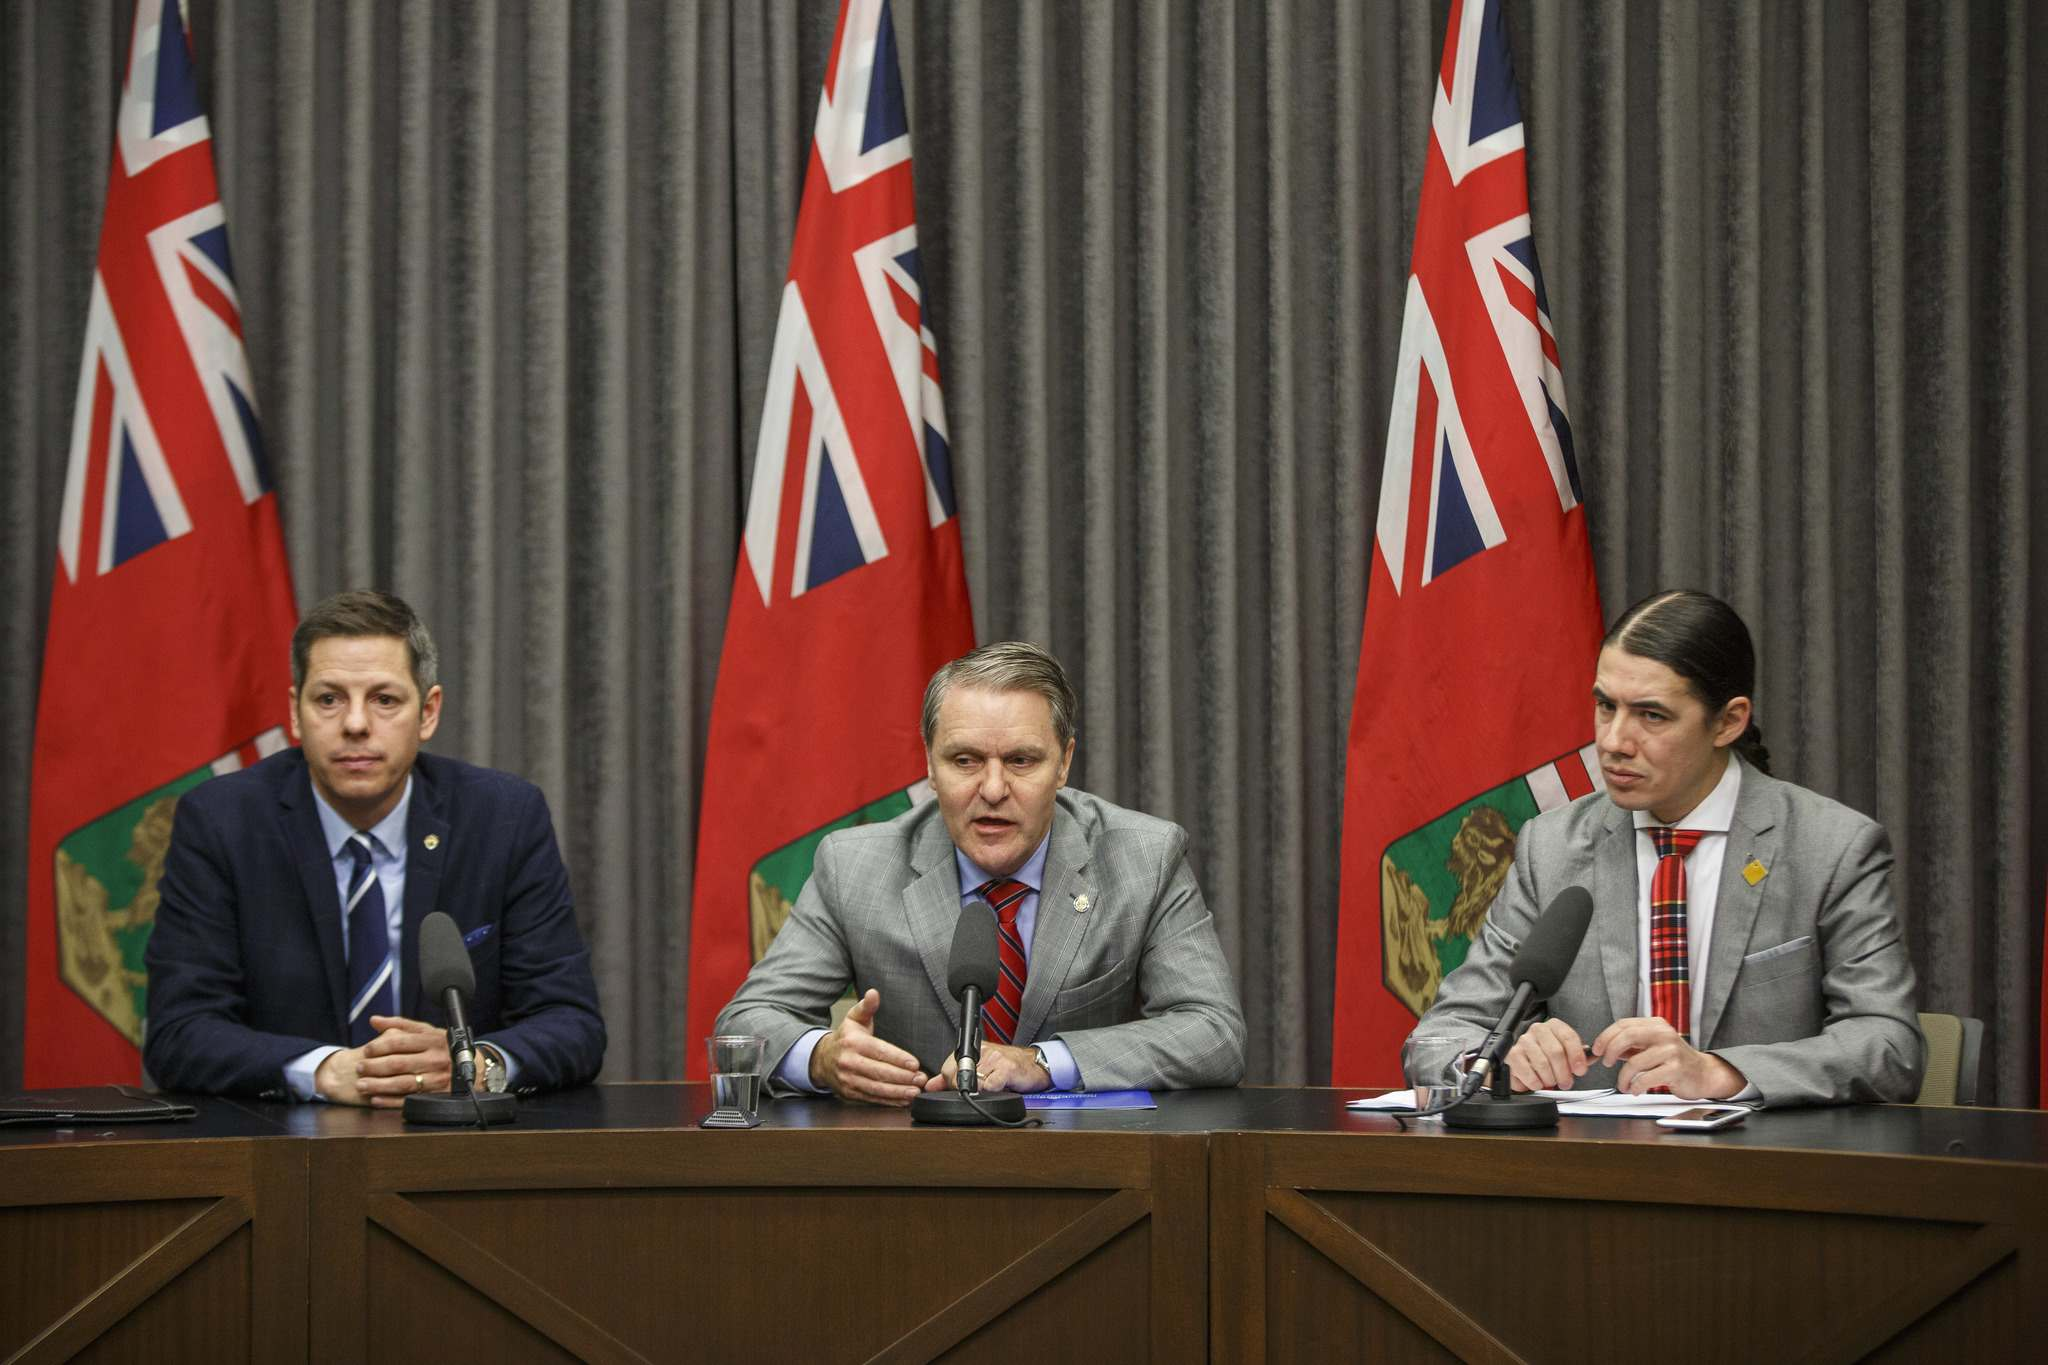 Winnipeg Mayor Brian Bowman (from left), Manitoba Health Minister Cameron Friesen and Winnipeg Centre MP Robert-Falcon Ouellette announced the formation Tuesday of a tri-level task force to deal with the province's meth crisis. (Mike Deal / Winnipeg Free Press)</p></p>